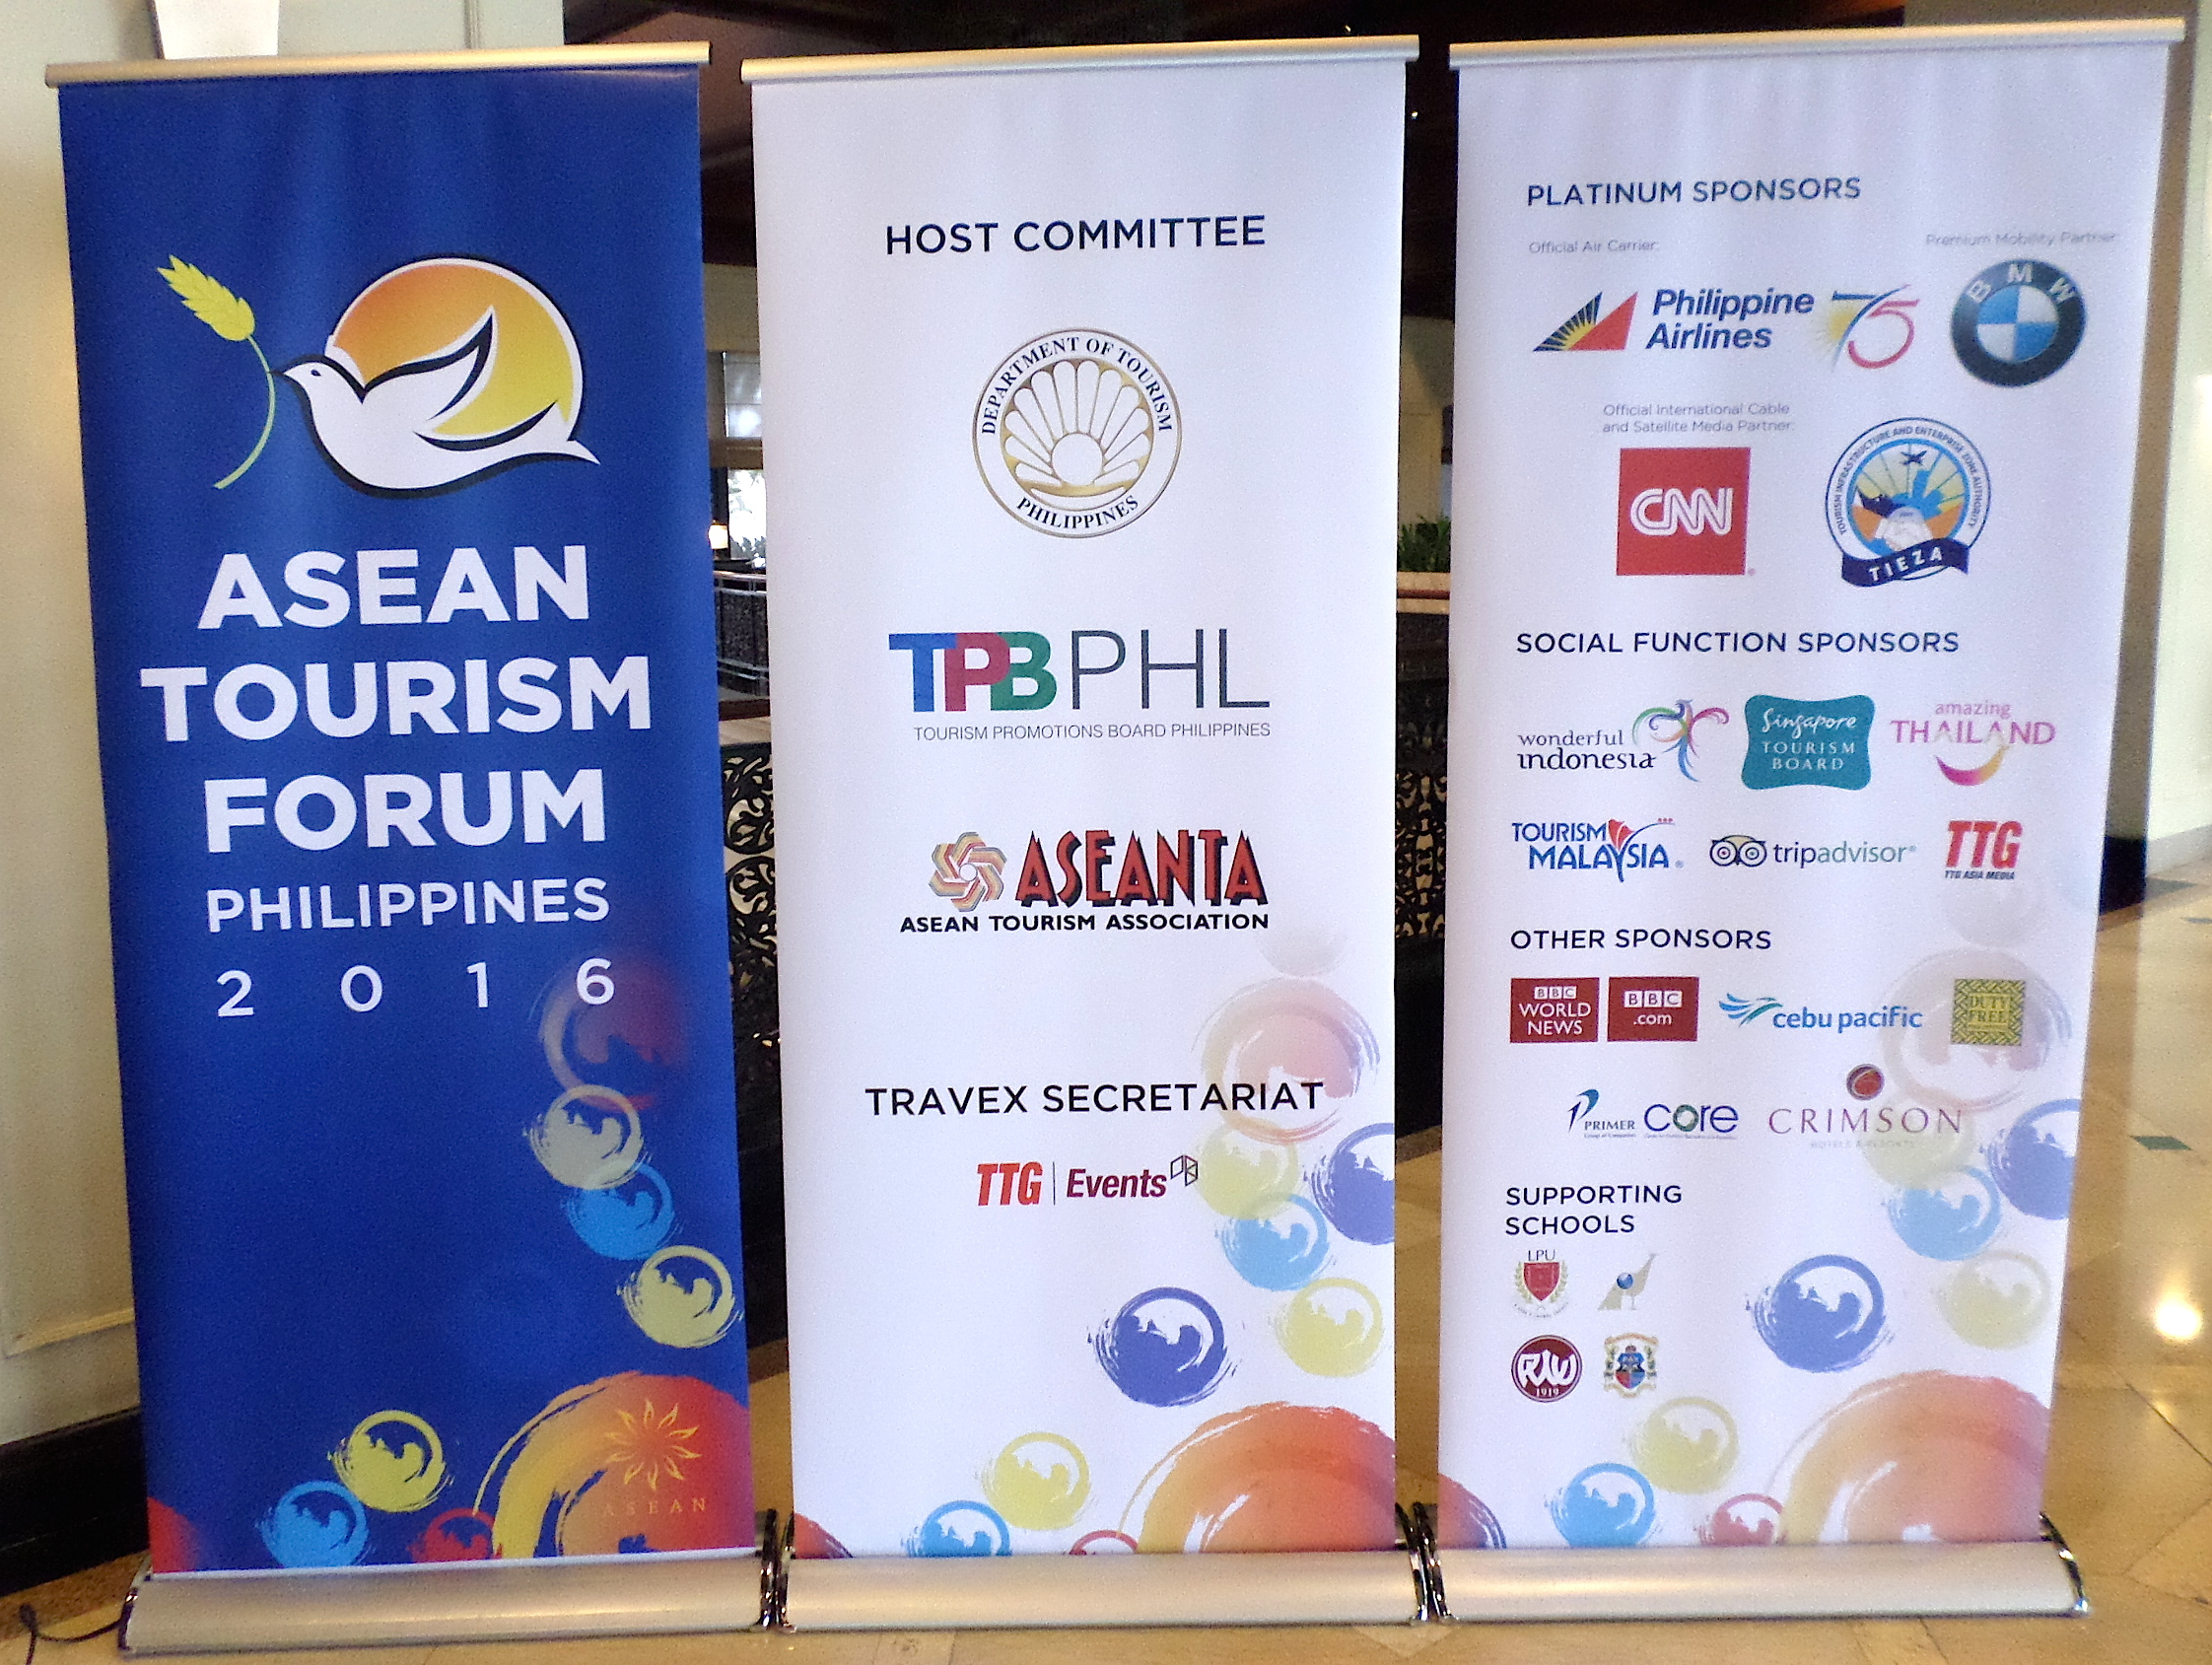 The complete array of organises and sponsors, along with the main ATF 2016 poster (left) which can be seen all over Manila's main roads. These posters were positioned in the main lobby of the Sofitel Philippines, where all the ASEAN NTO meetings are being held.